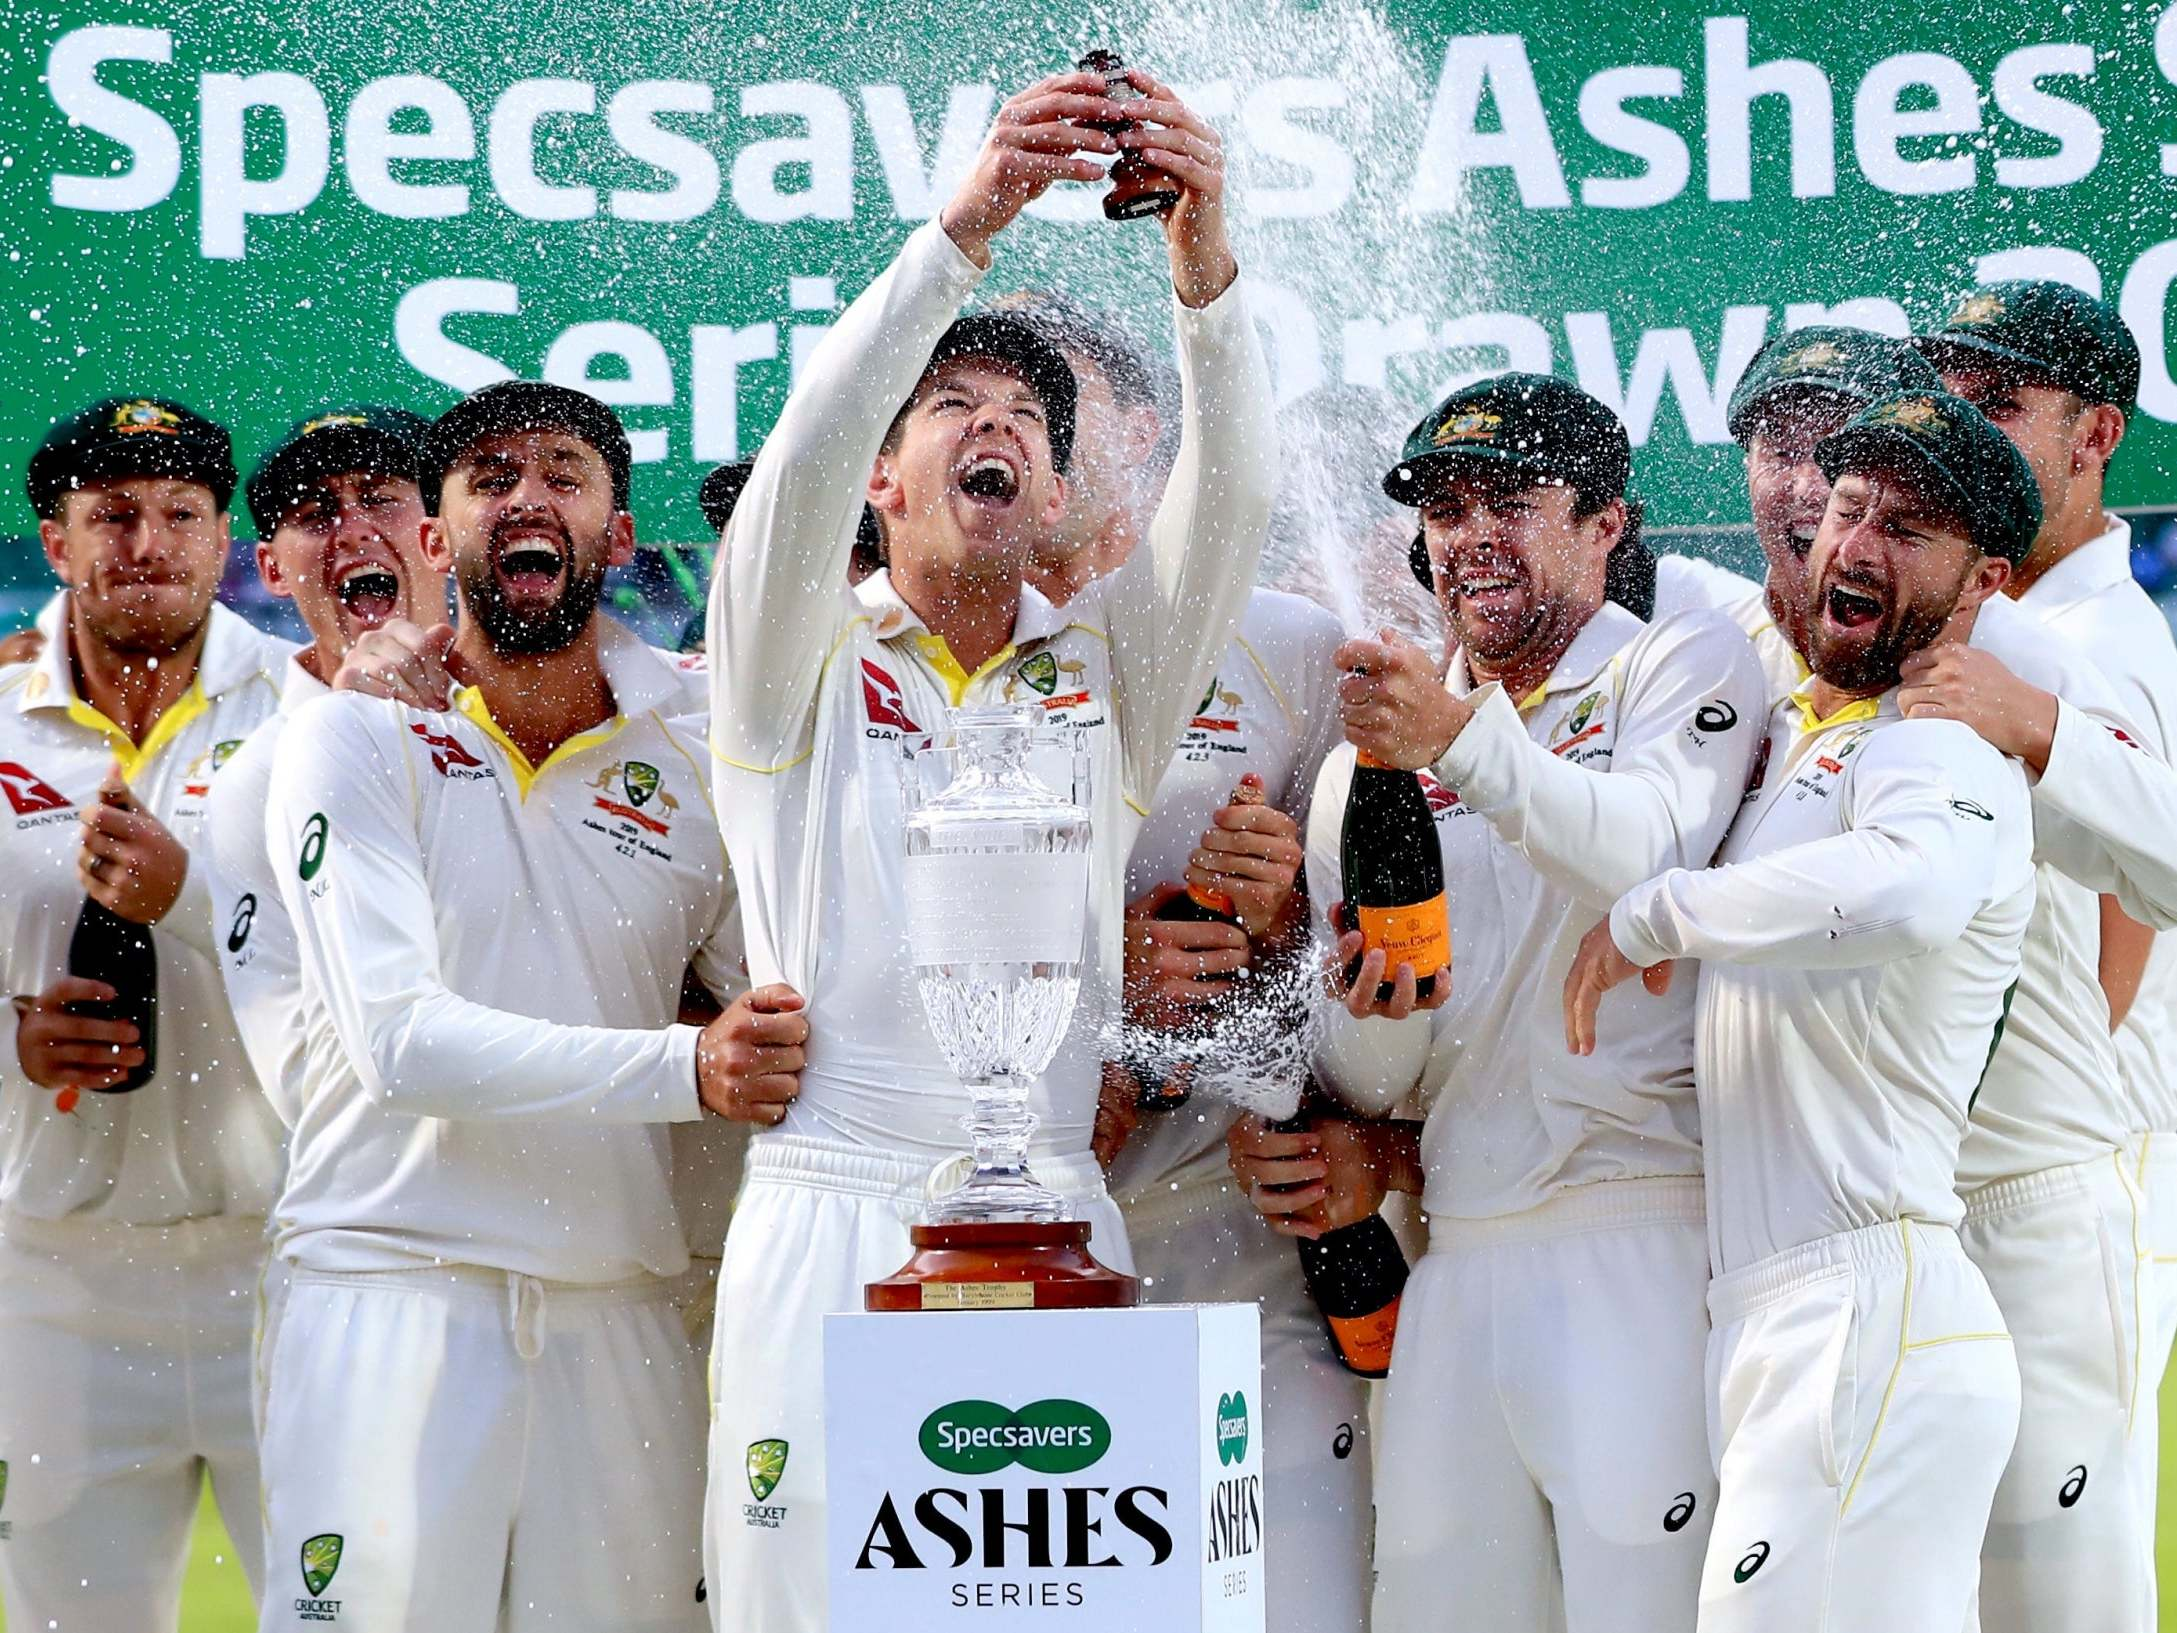 Ashes 2019: Fulfilled but unconvincing, Australia leave the series broadly as they entered it – a drawn series really is the right result